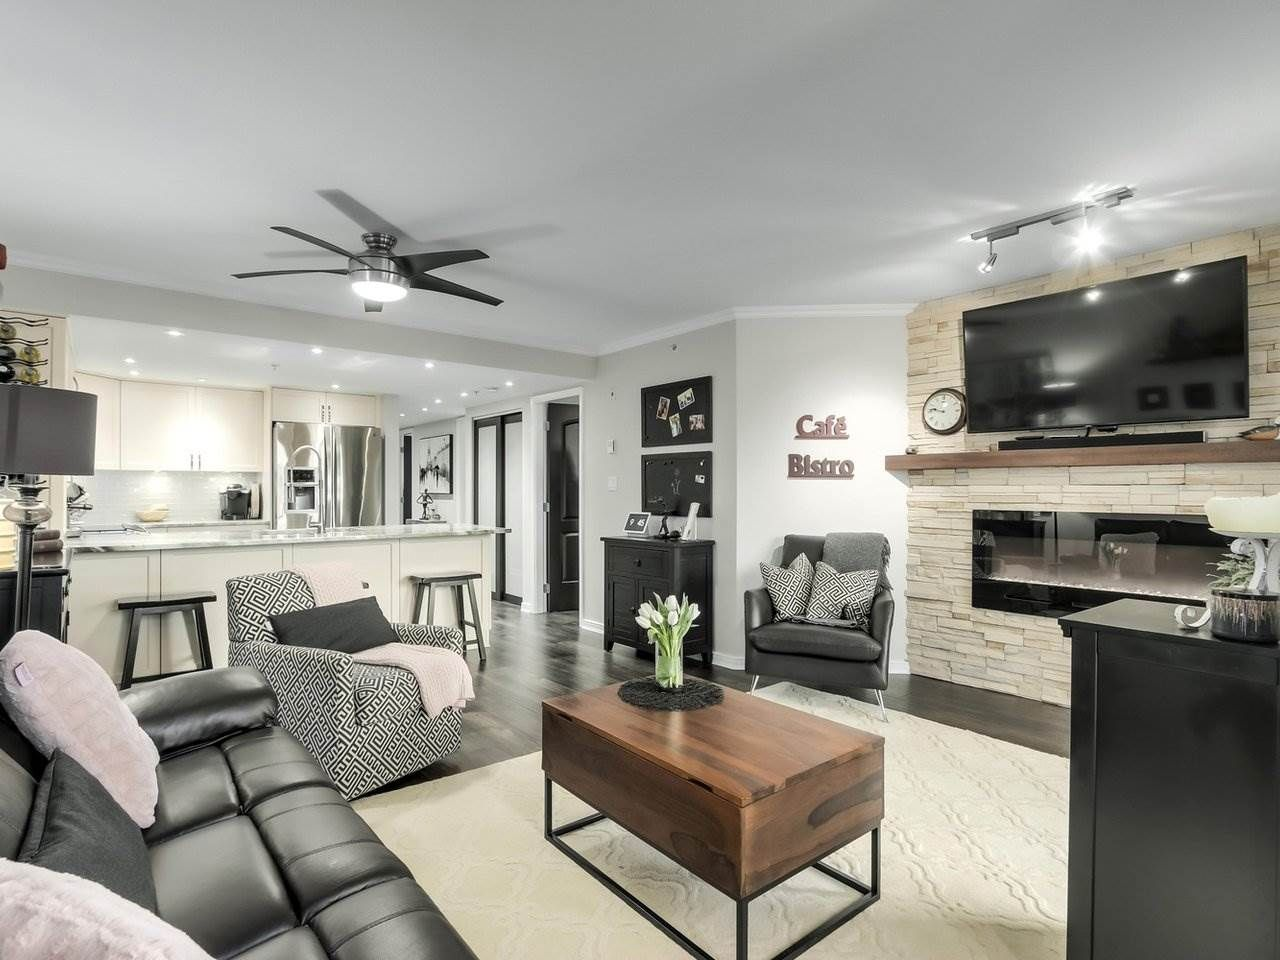 """Main Photo: 201 2665 W BROADWAY in Vancouver: Kitsilano Condo for sale in """"MAGUIRE BUILDING"""" (Vancouver West)  : MLS®# R2565478"""